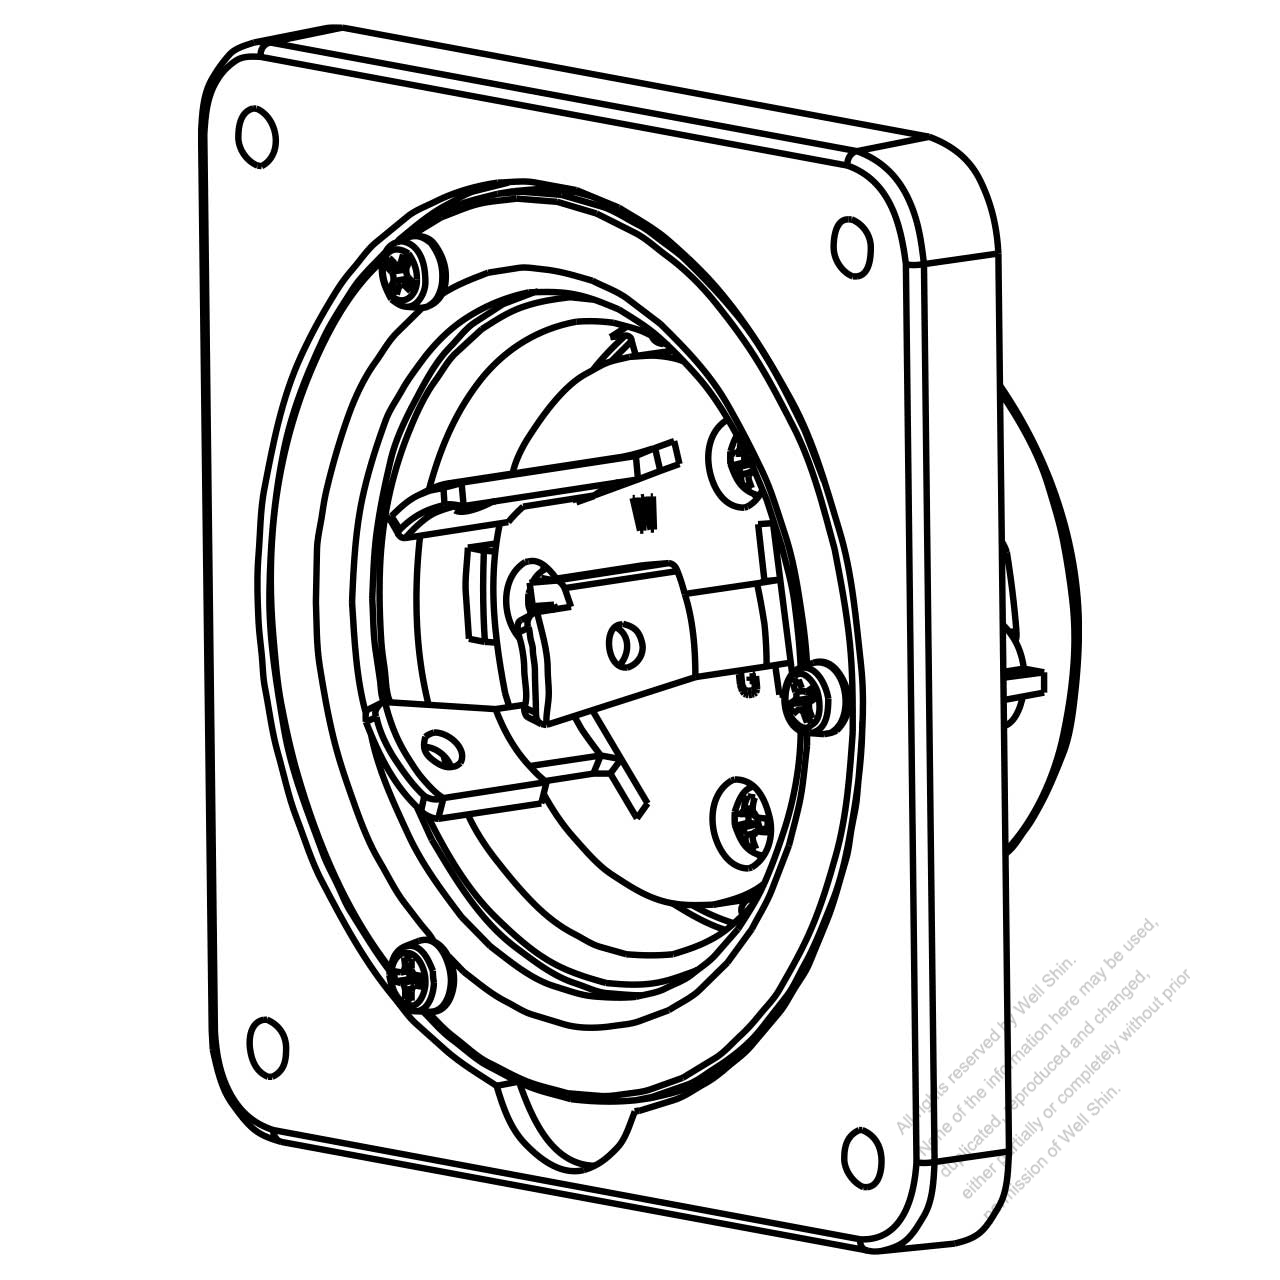 USA/Canada Locking Flanged Inlet NEMA L6-30P, 2 P 3 Wire